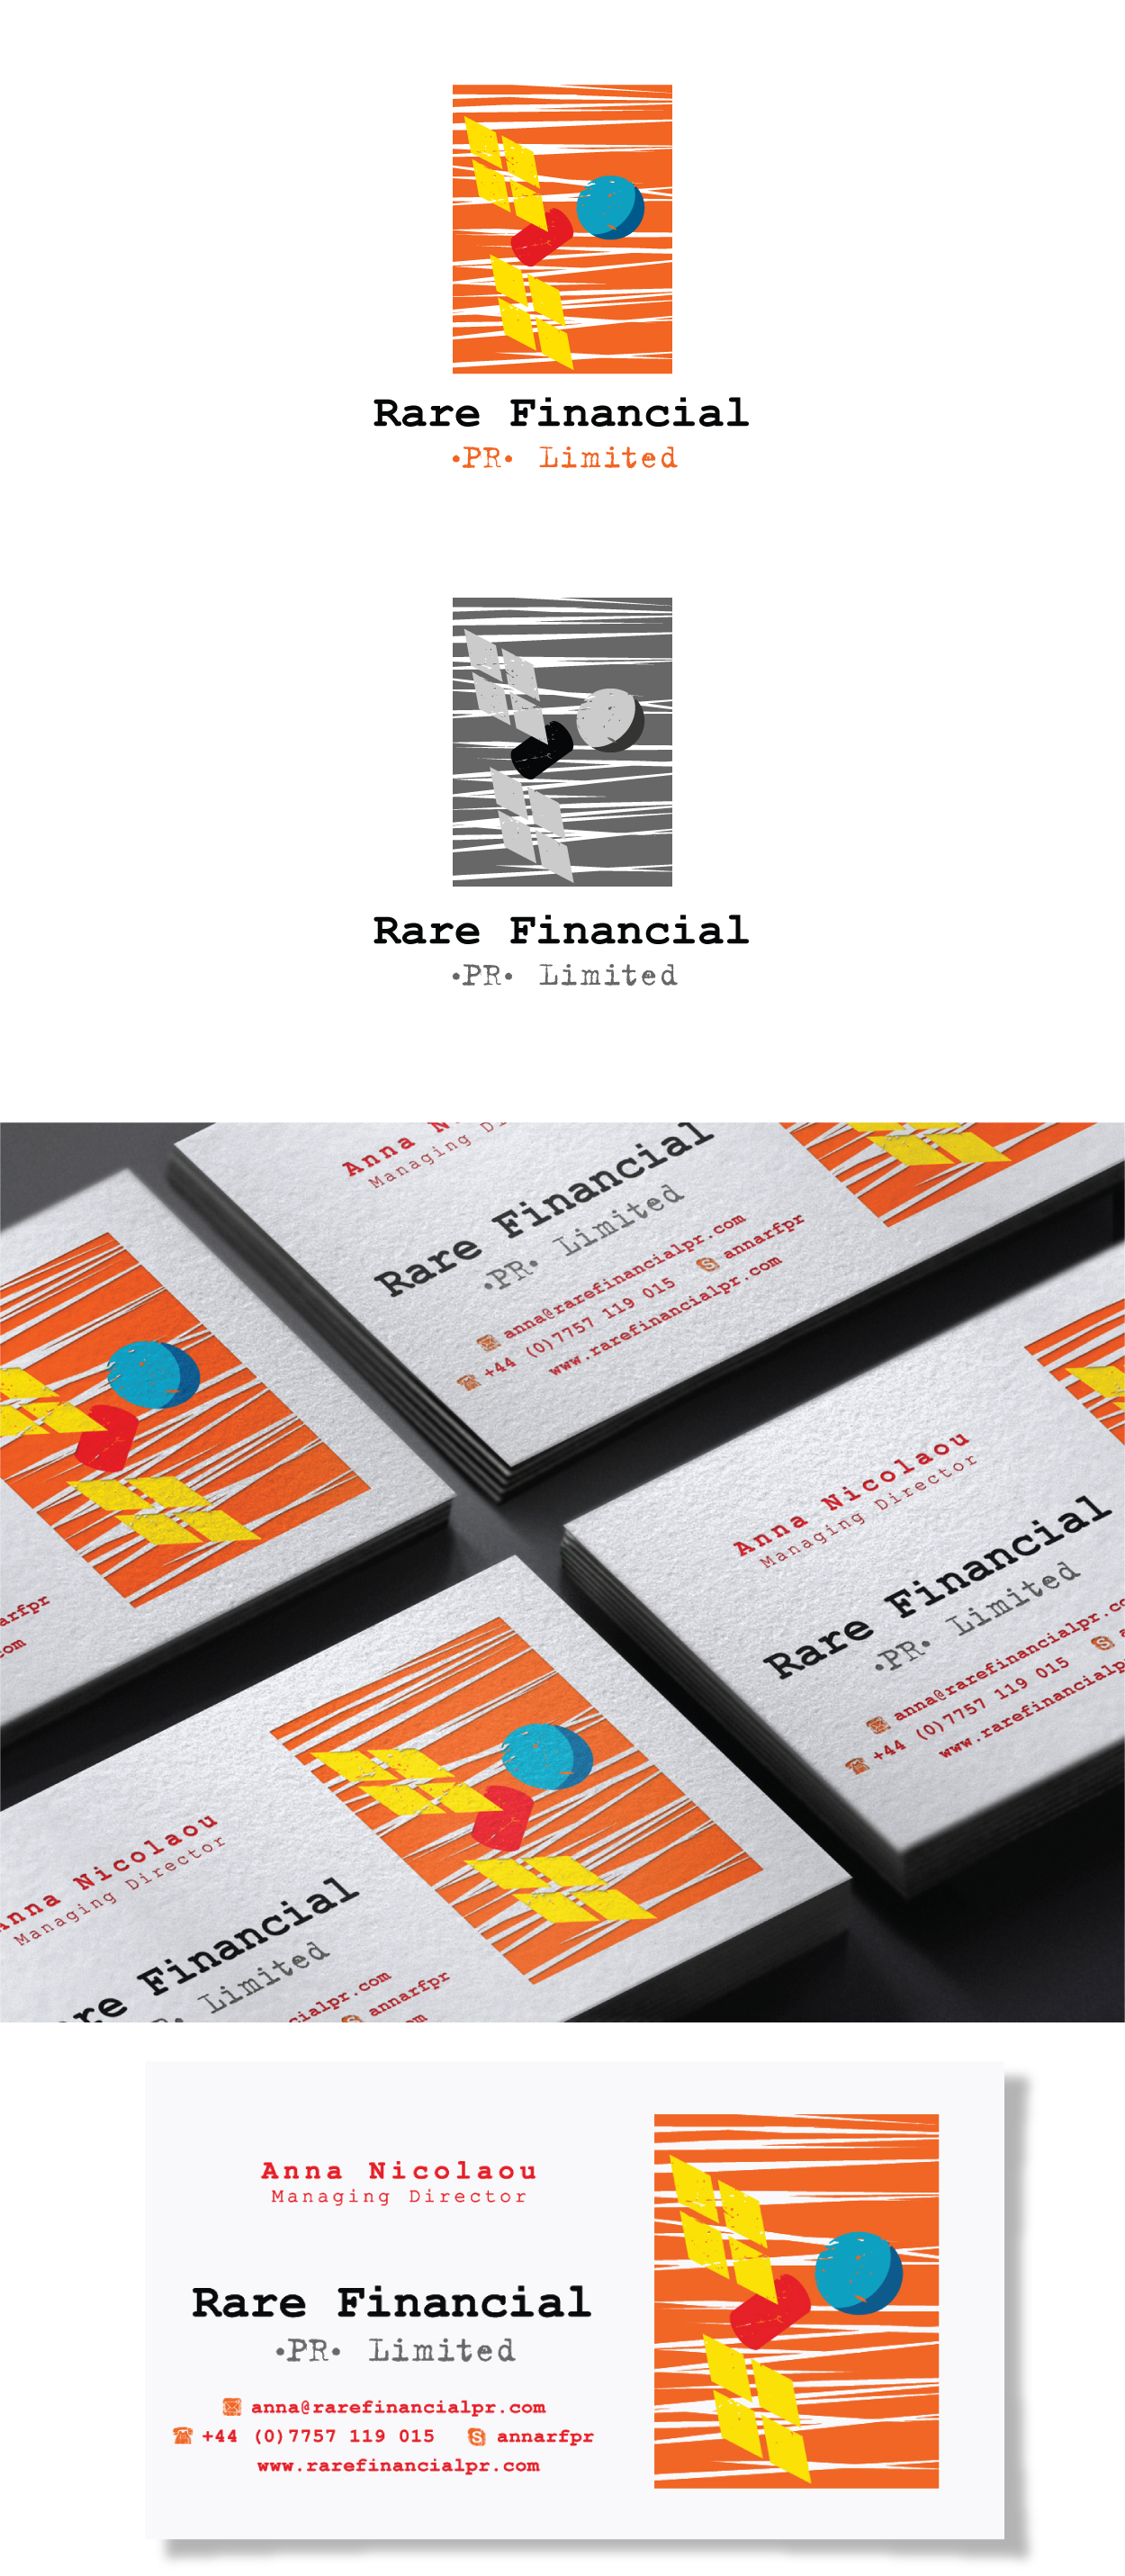 New logo and business card wanted for Rare Financial (PR) Limited